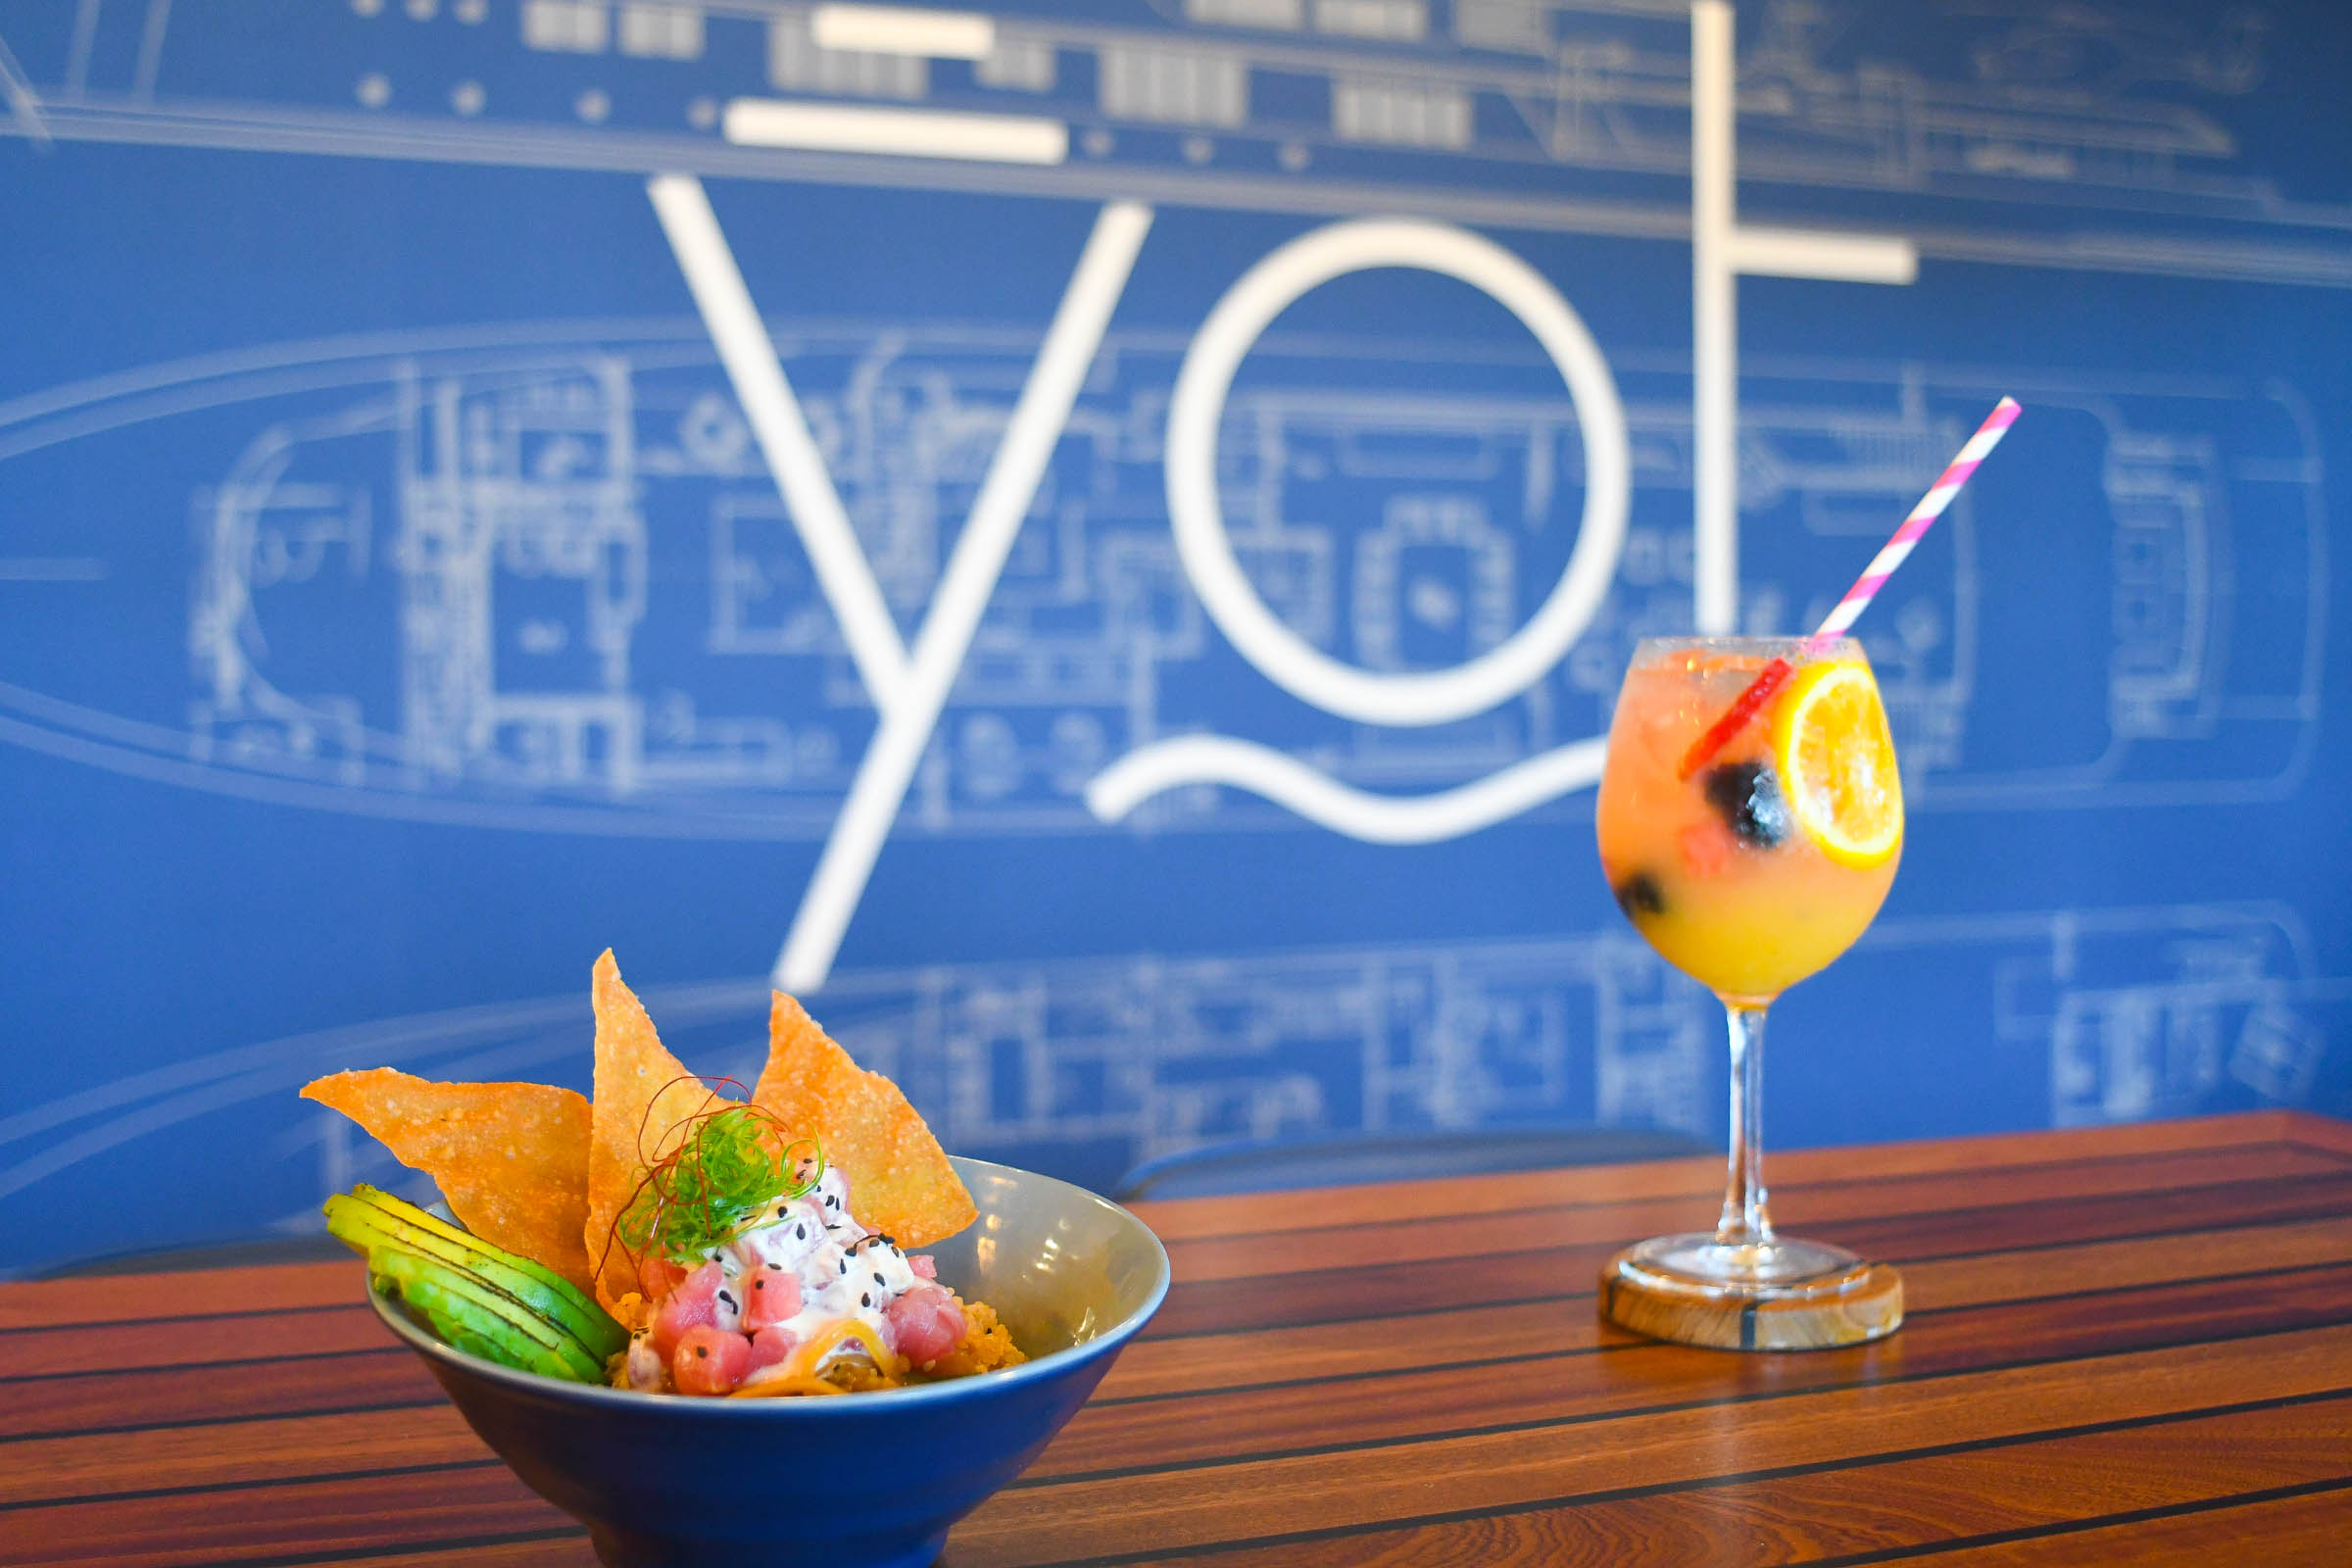 Yot Bar Kitchen Fort Lauderdale Private Dining Rehearsal Dinners Banquet Halls Tripleseat